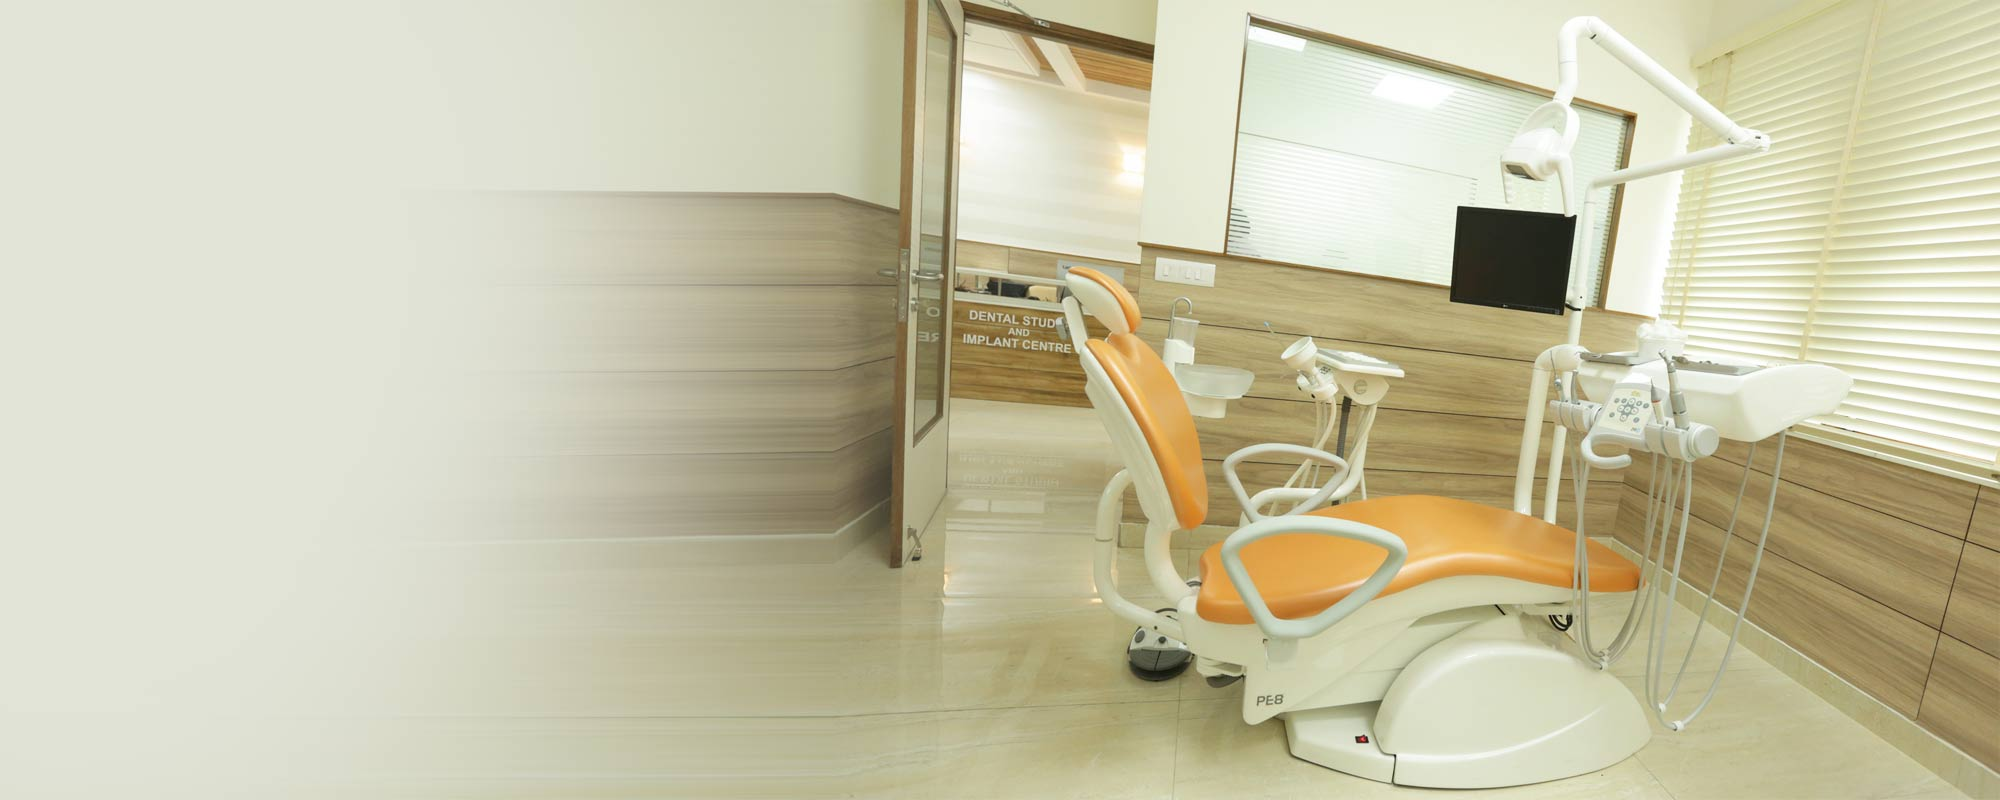 Dental Clinic In Chanakyapuri, Dentist In Chanakyapuri, Best Dentist In Chanakyapuri